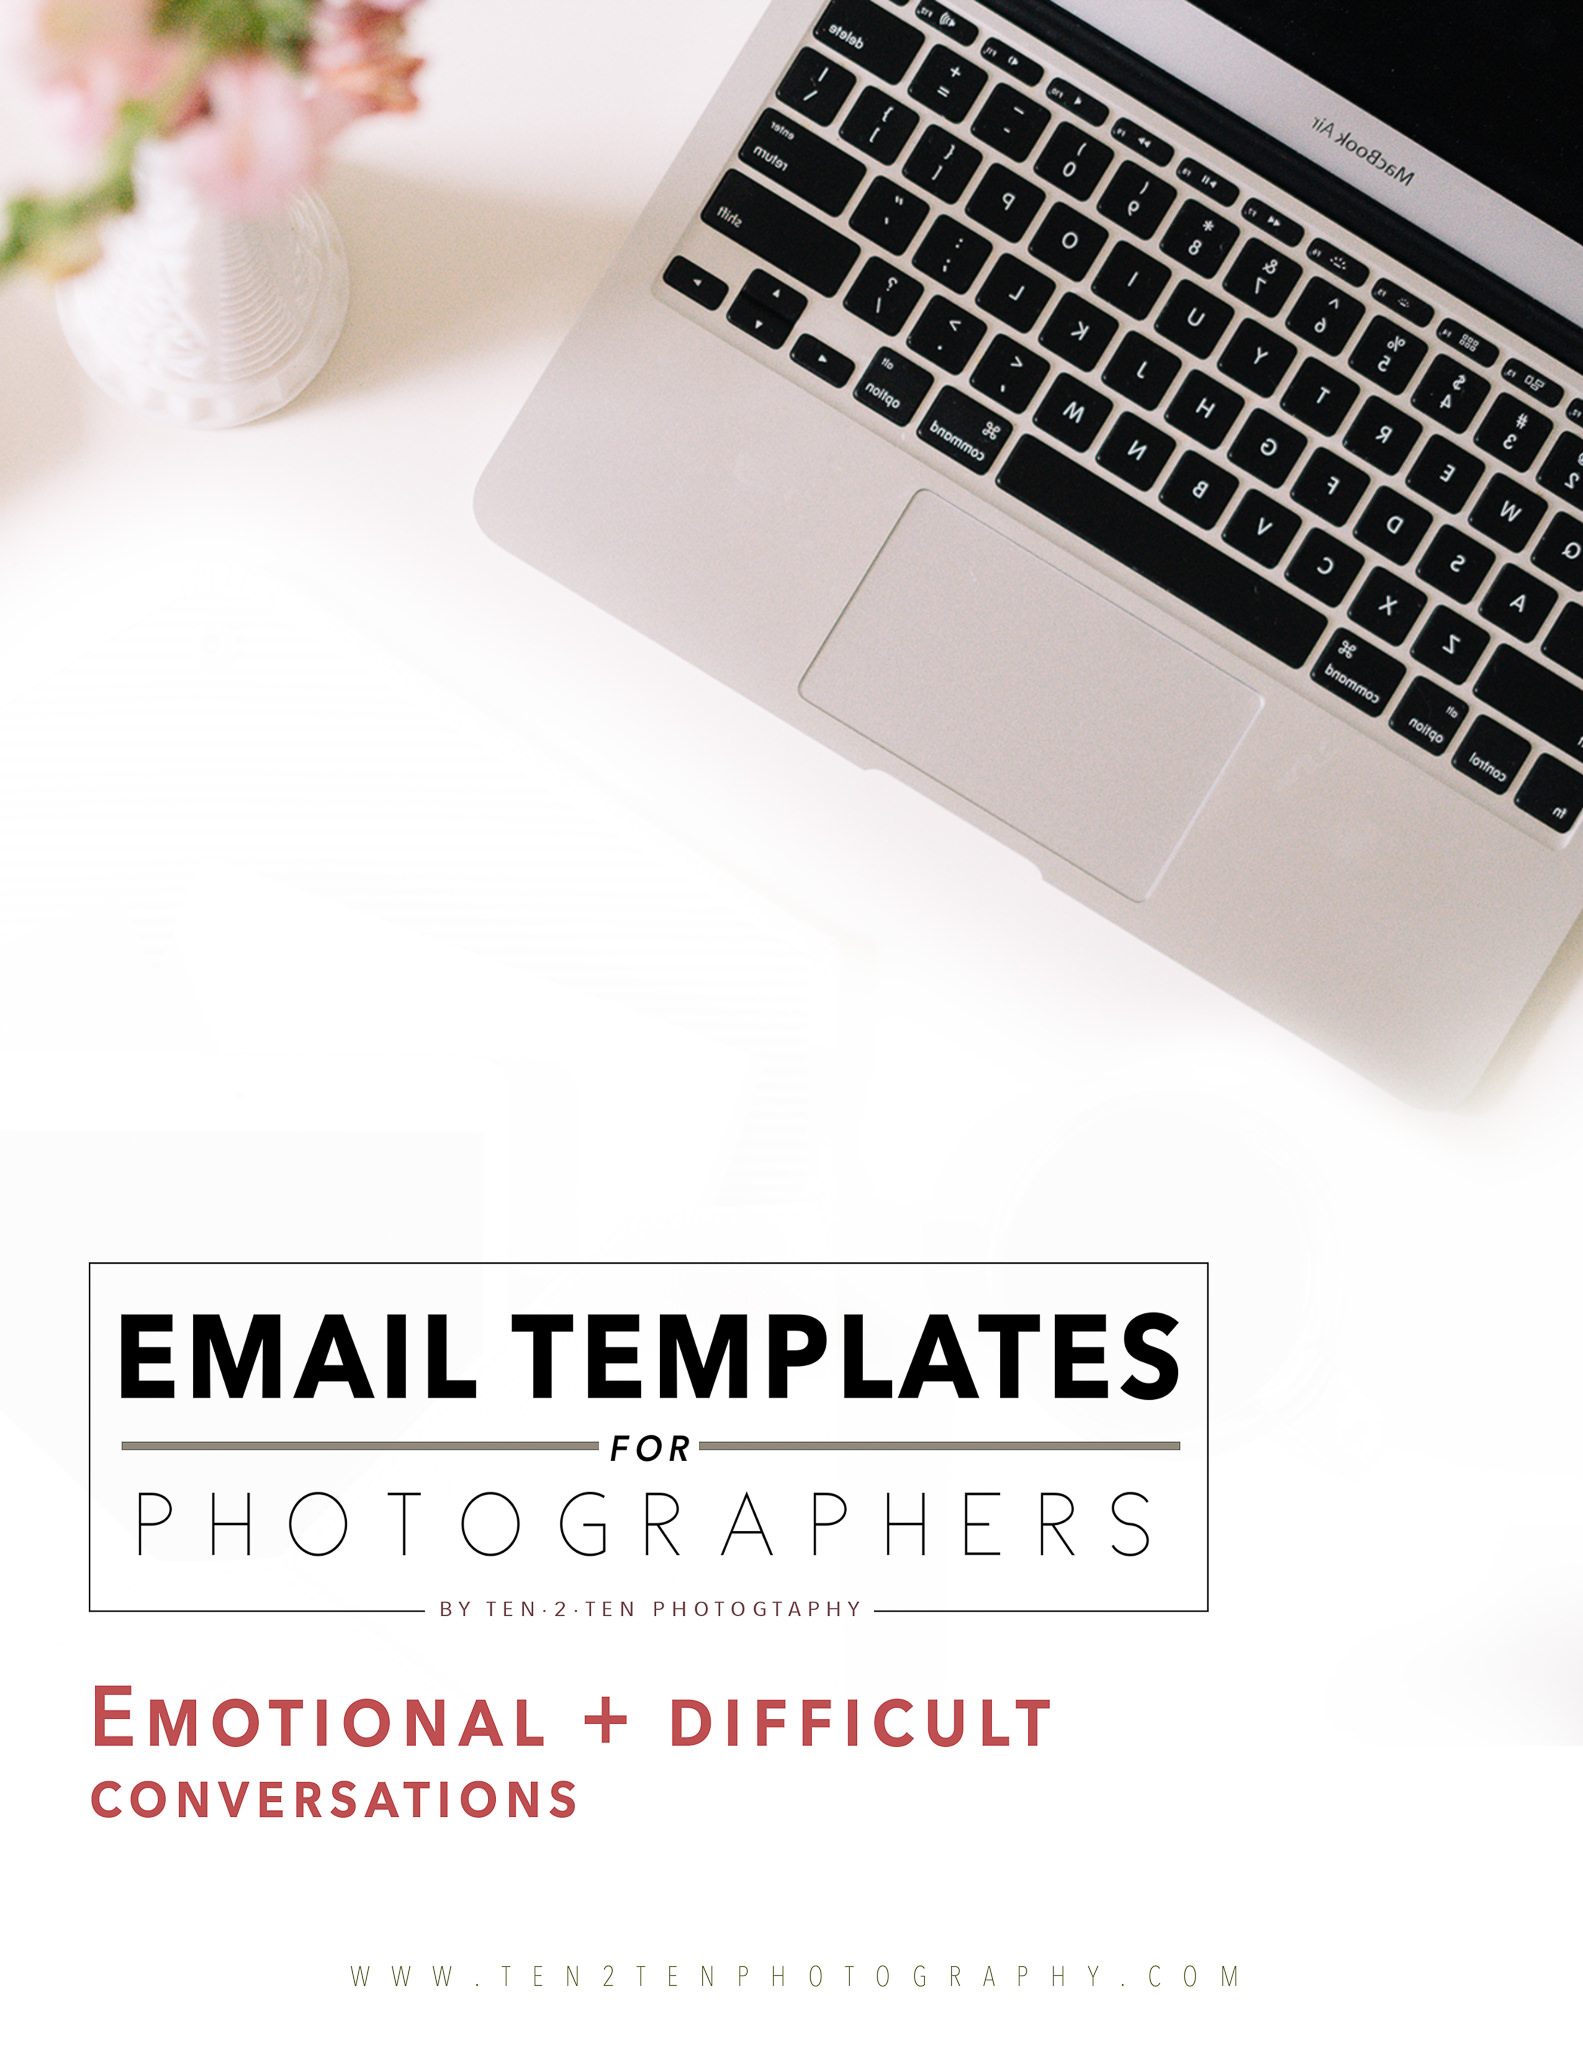 email templates for photographers 10 - Contract Contents + Guidelines